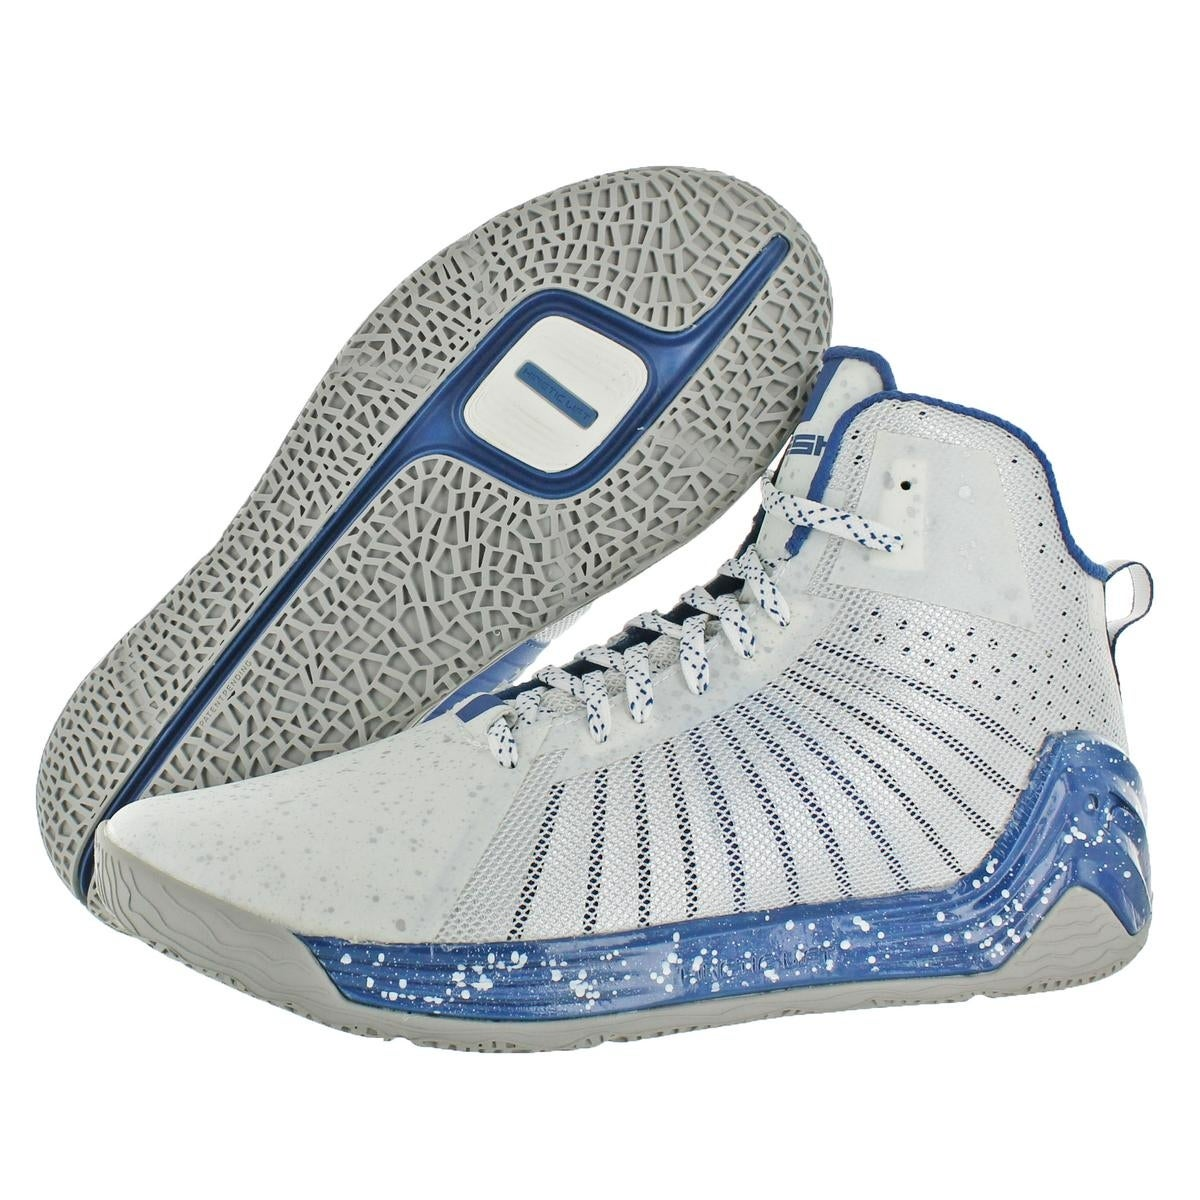 8ab1a98595b Shop Tesh Mens Trooper Basketball Shoes Metallic Kinetic Lift - Free  Shipping On Orders Over  45 - Overstock - 22366613